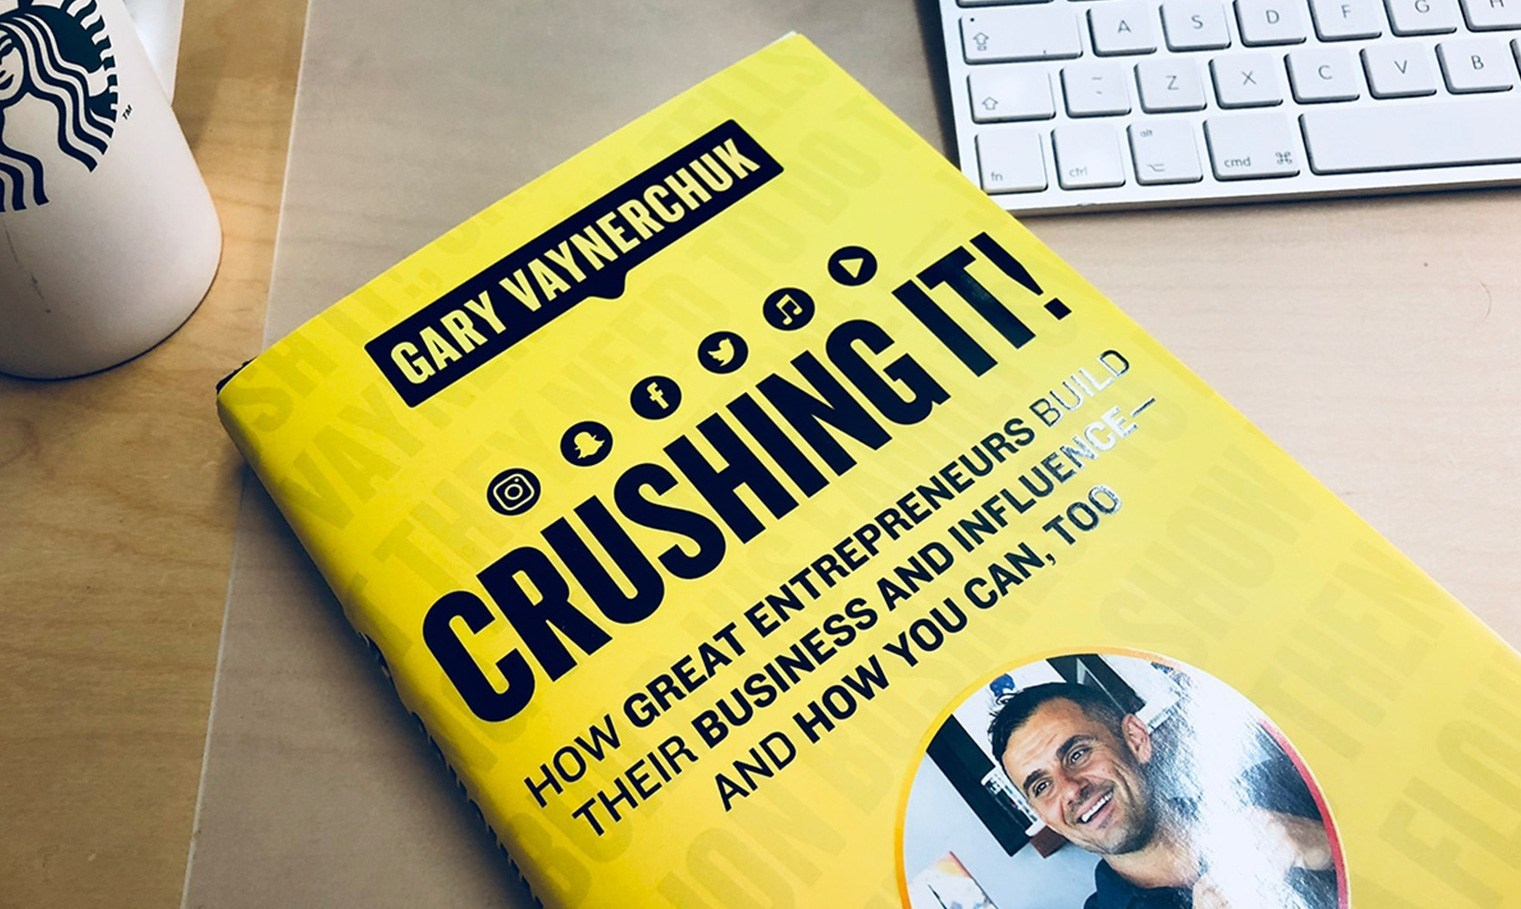 crushing-it-by-gary-vee-deon-graham-entreprenuer-featured.jpg